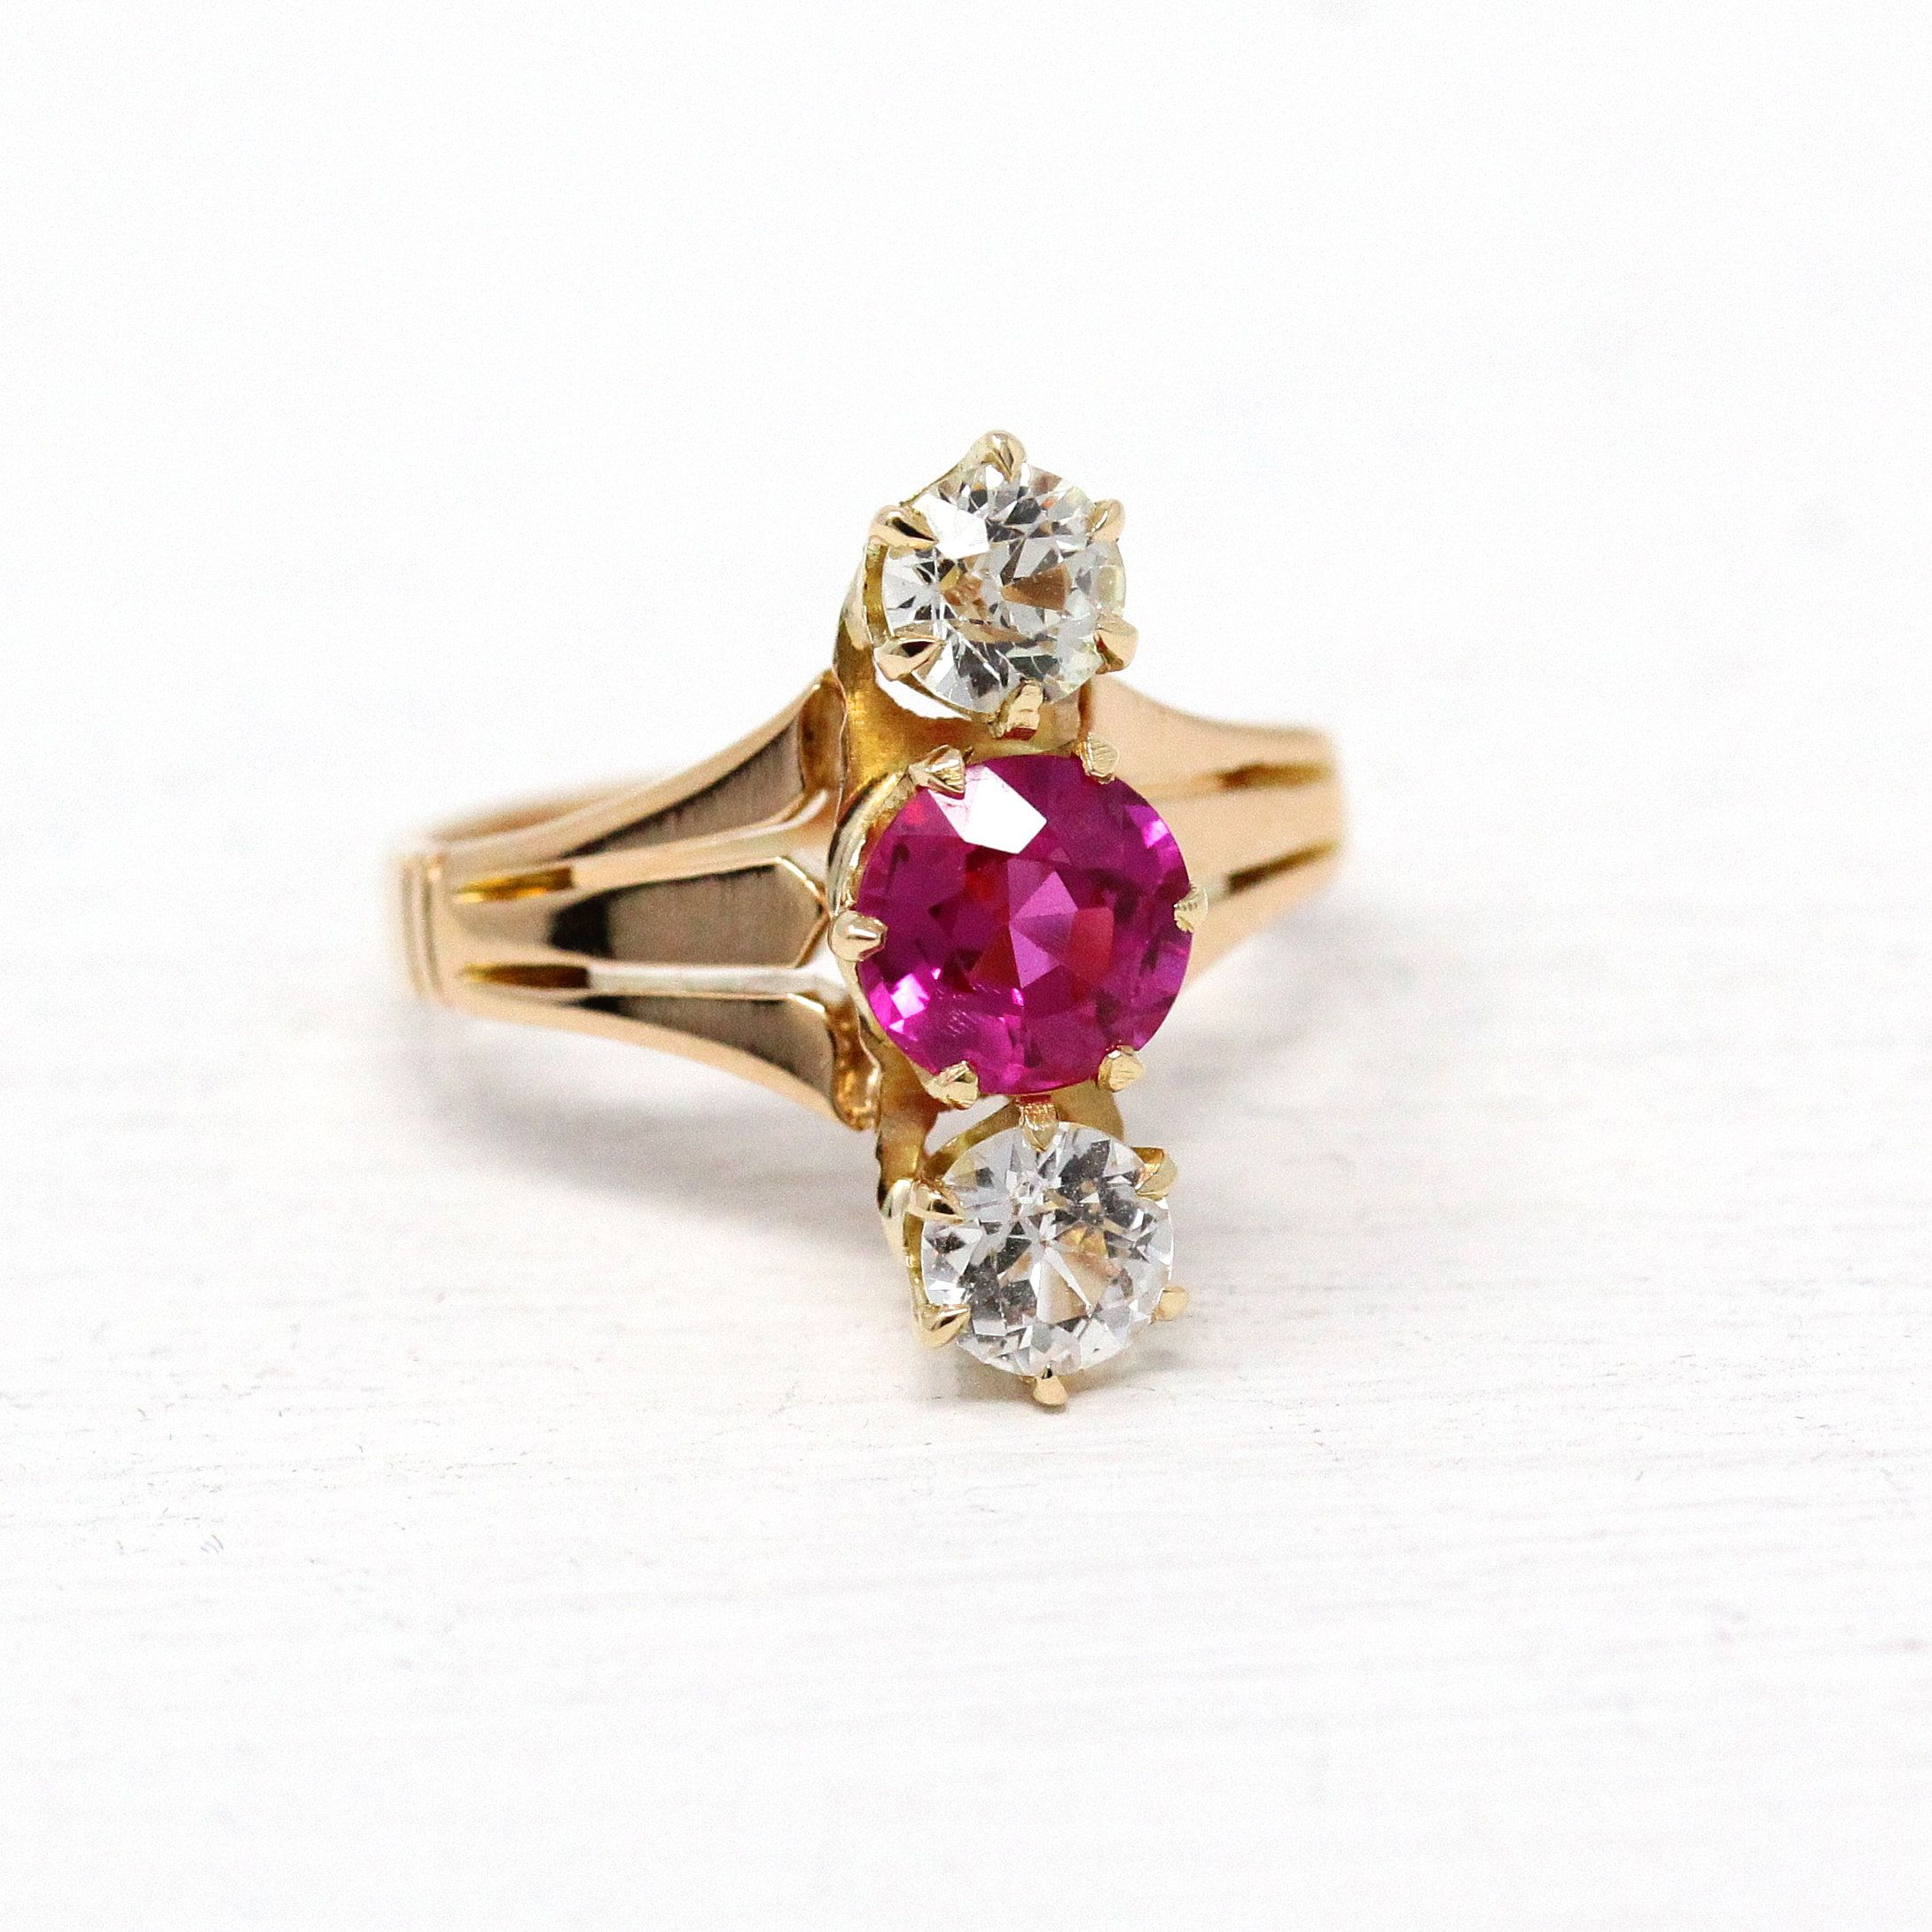 2594b9e71 Created White Sapphire & Ruby Ring - Antique Edwardian 14k Rosy Yellow Gold  Statement - Size